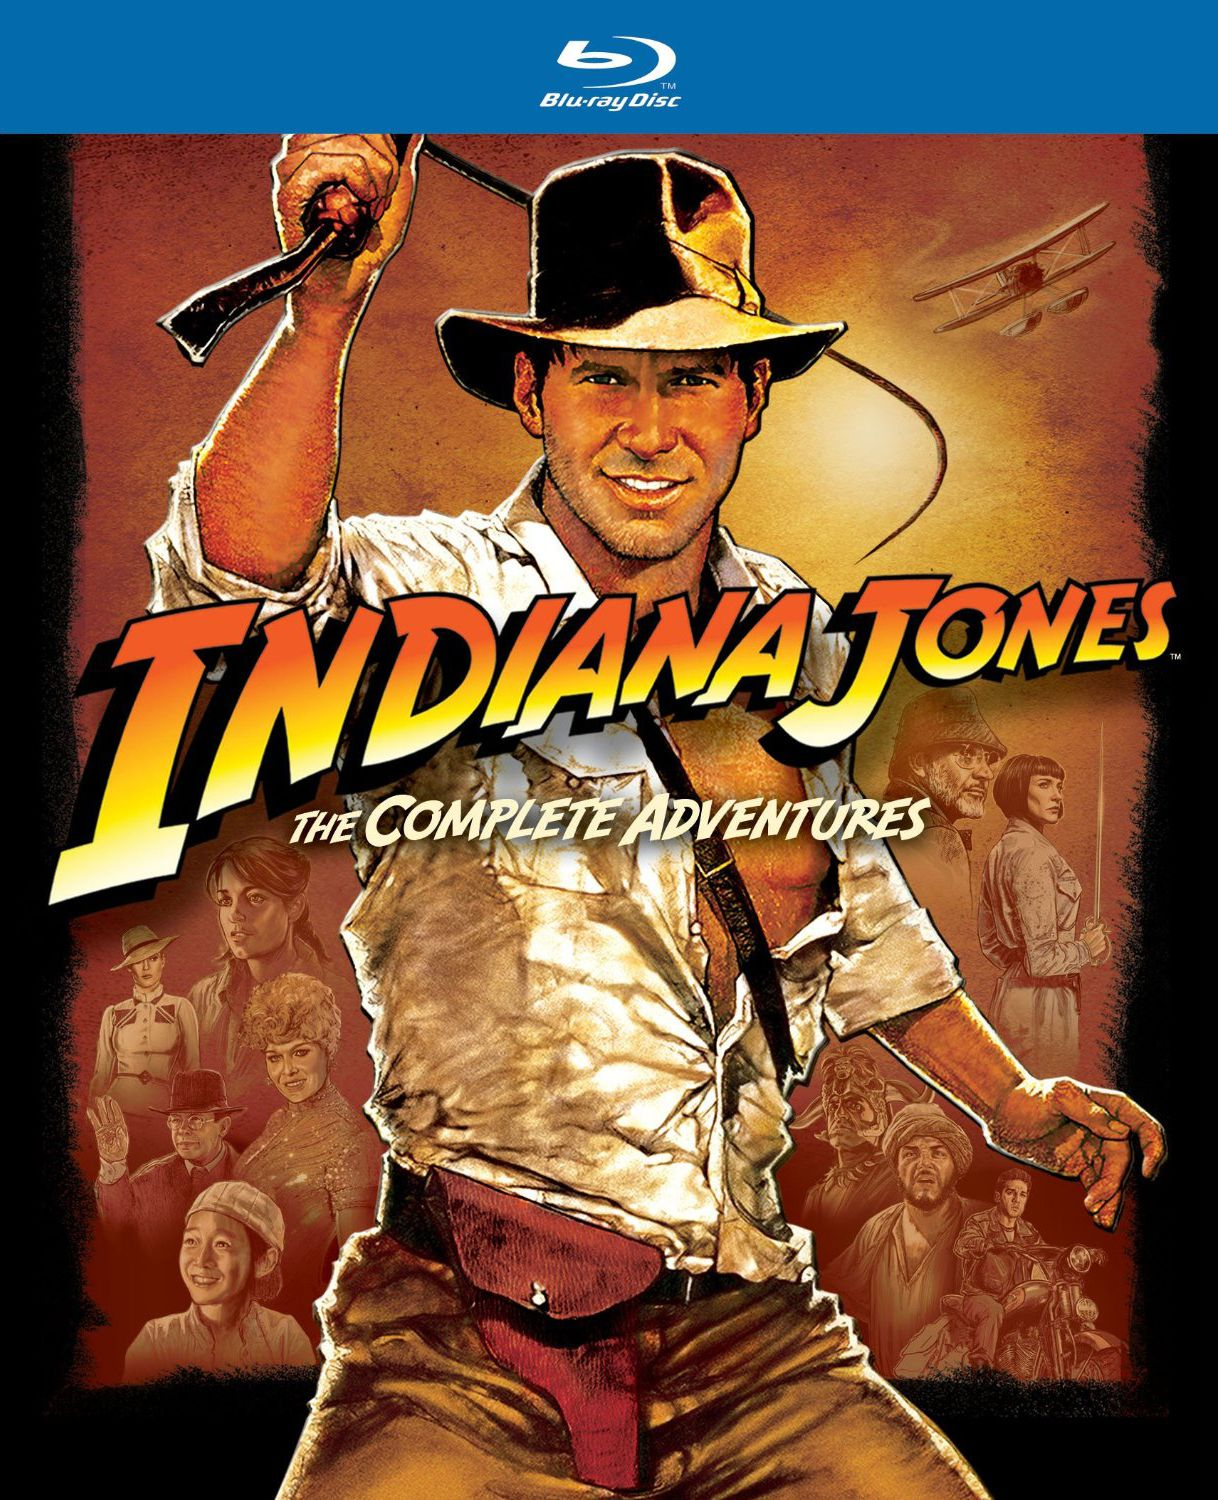 fa8bca3ac Blu-ray Review: Indiana Jones: The Complete Adventures - Slant Magazine